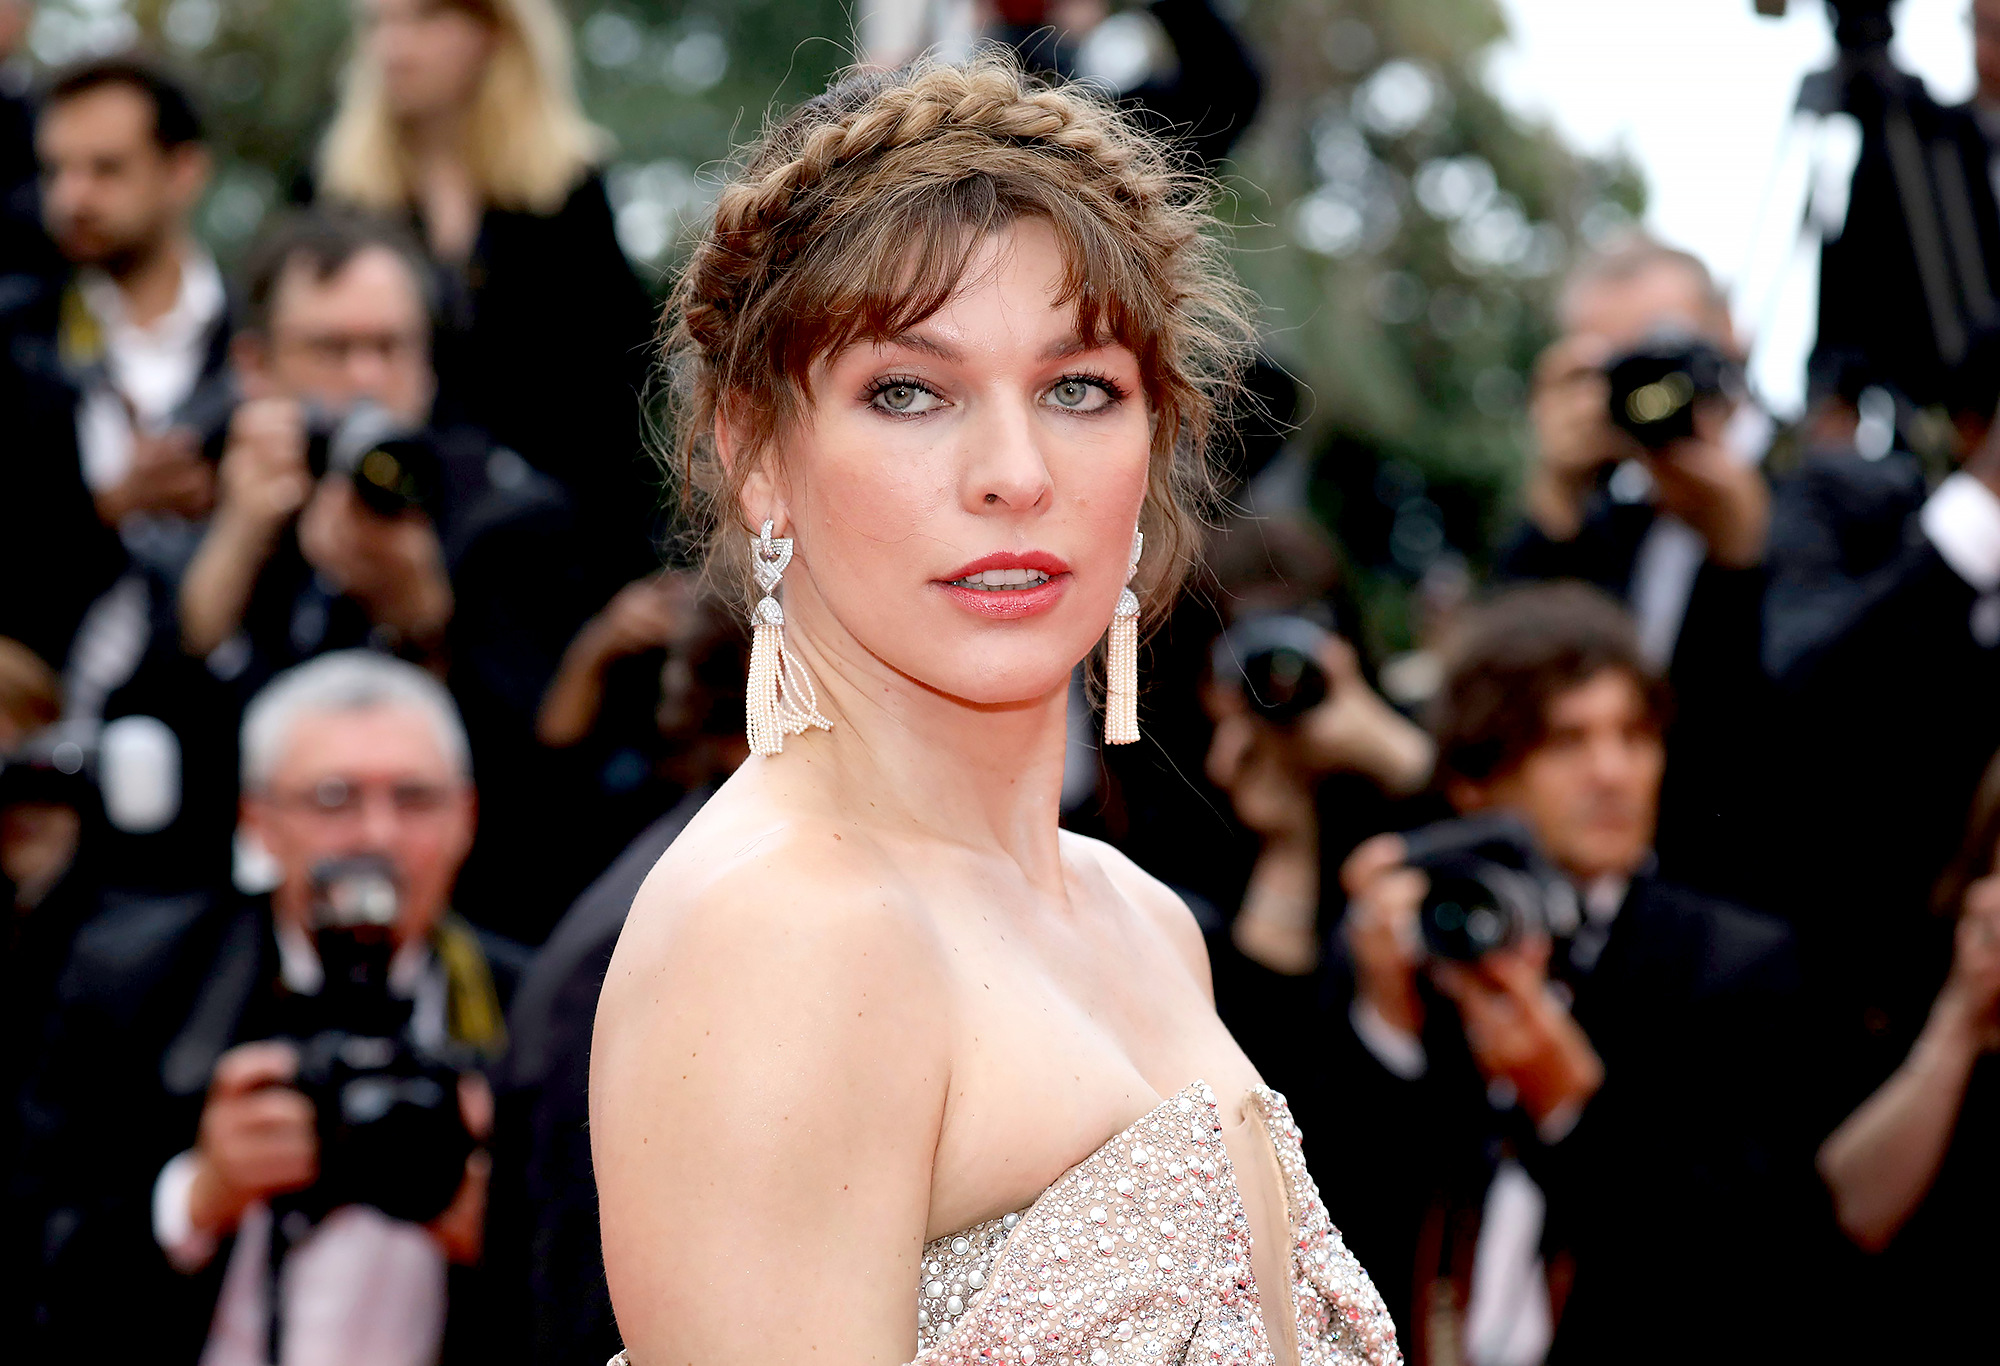 Milla Jovovich Spends Day With Newborn Baby Amid Jaundice Diagnosis 2